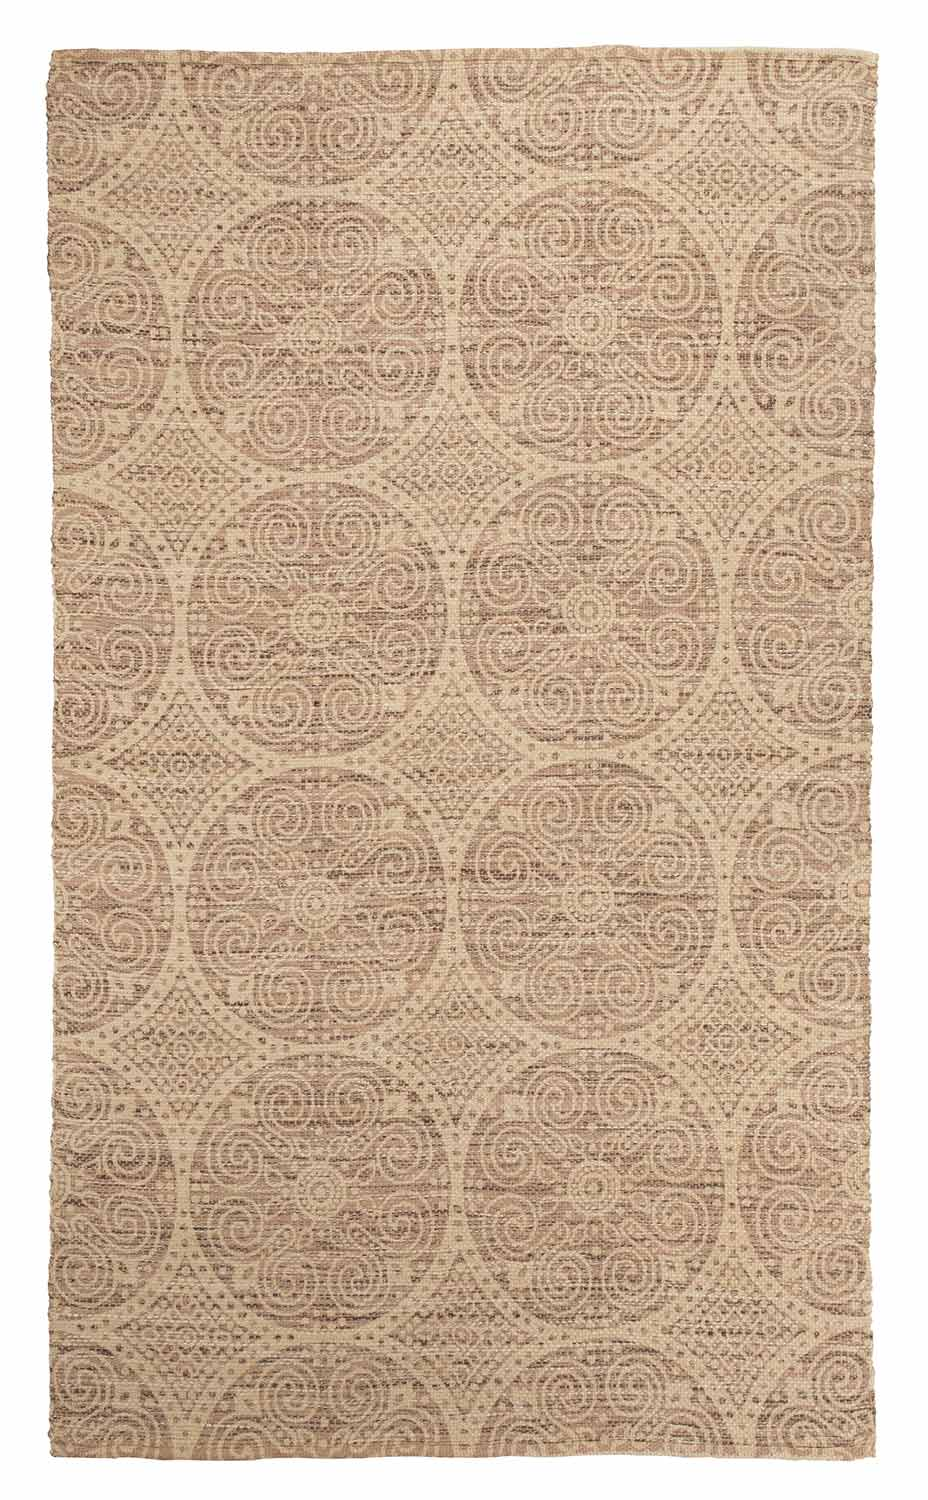 Ashley Raconteur Medium Rug - Sage